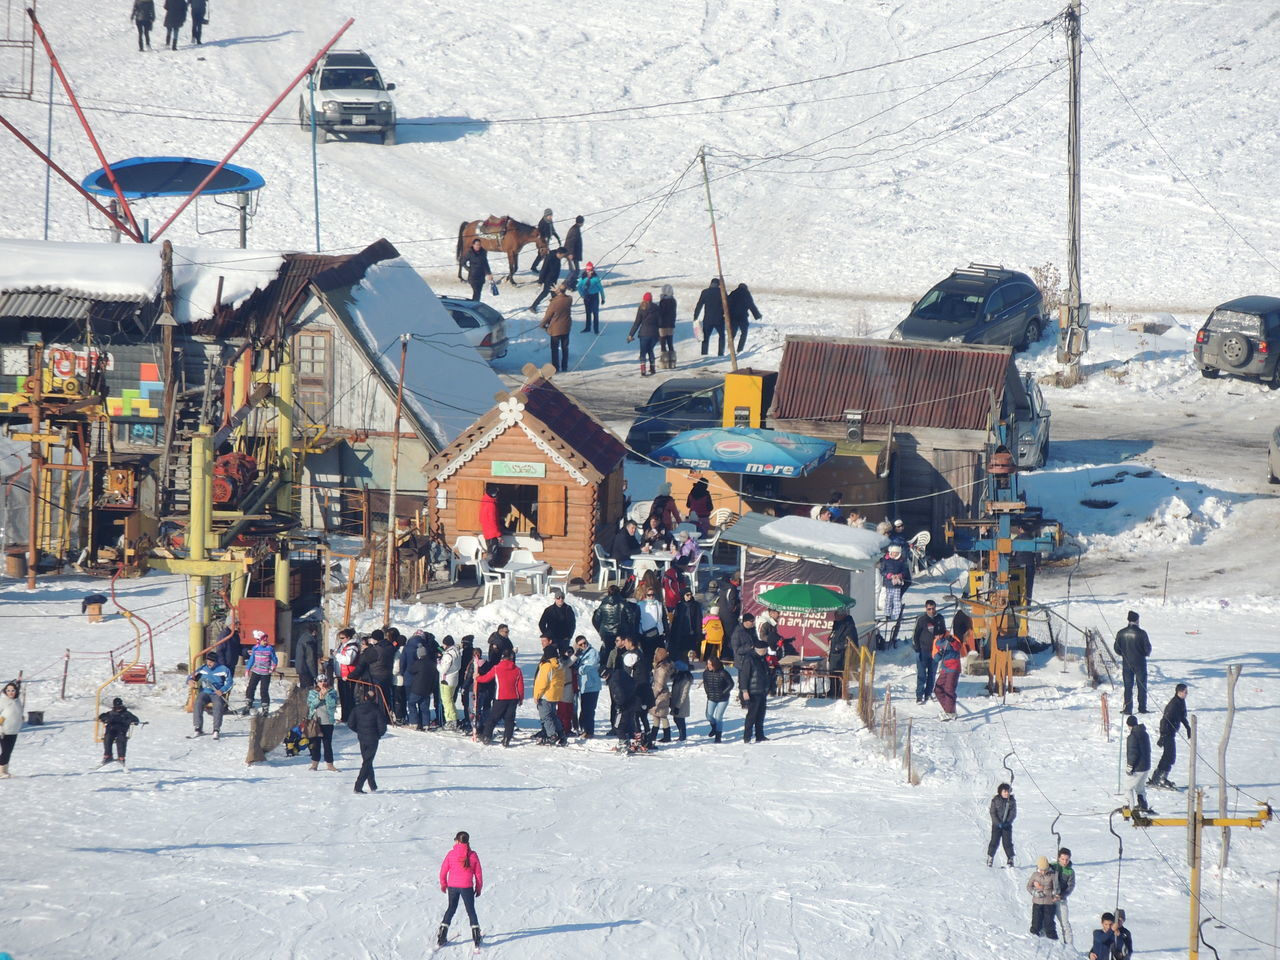 large group of people, winter, snow, cold temperature, leisure activity, real people, day, winter sport, lifestyles, mixed age range, outdoors, frozen, men, women, enjoyment, built structure, vacations, nature, ice-skating, architecture, ski holiday, ice rink, building exterior, ski lift, crowd, warm clothing, sky, people, adult, adults only